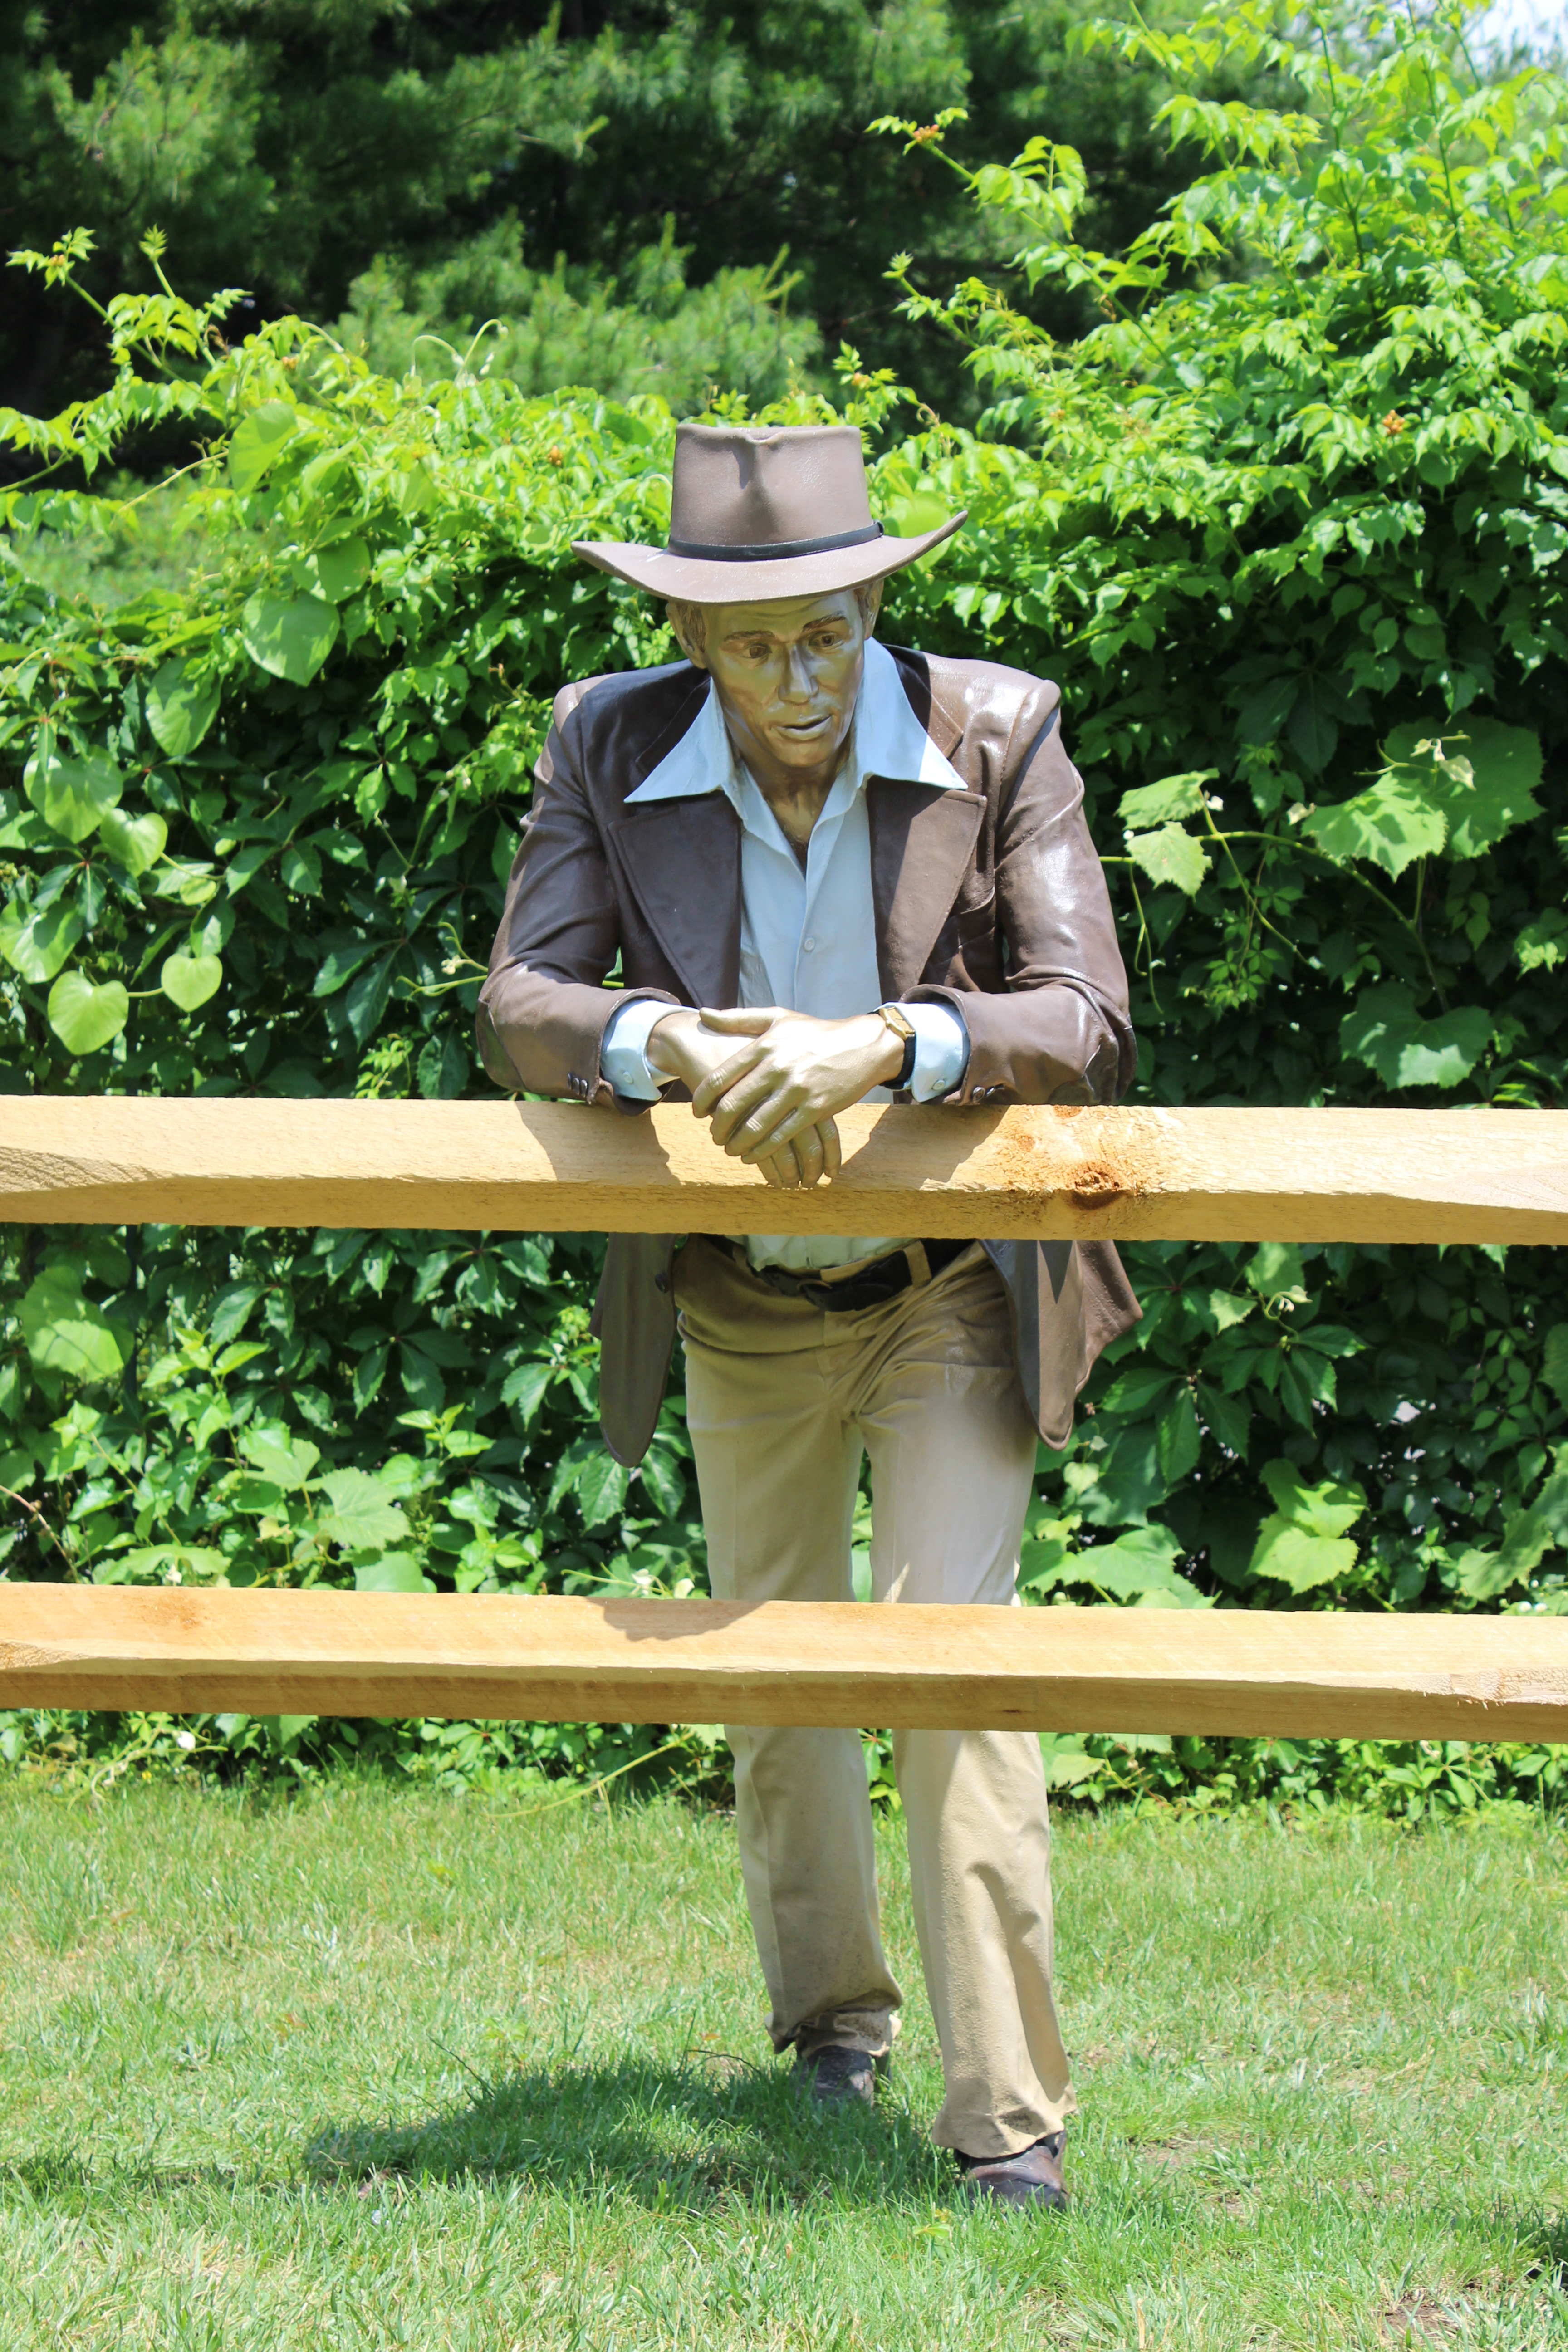 Taking Stock by Seward Johnson